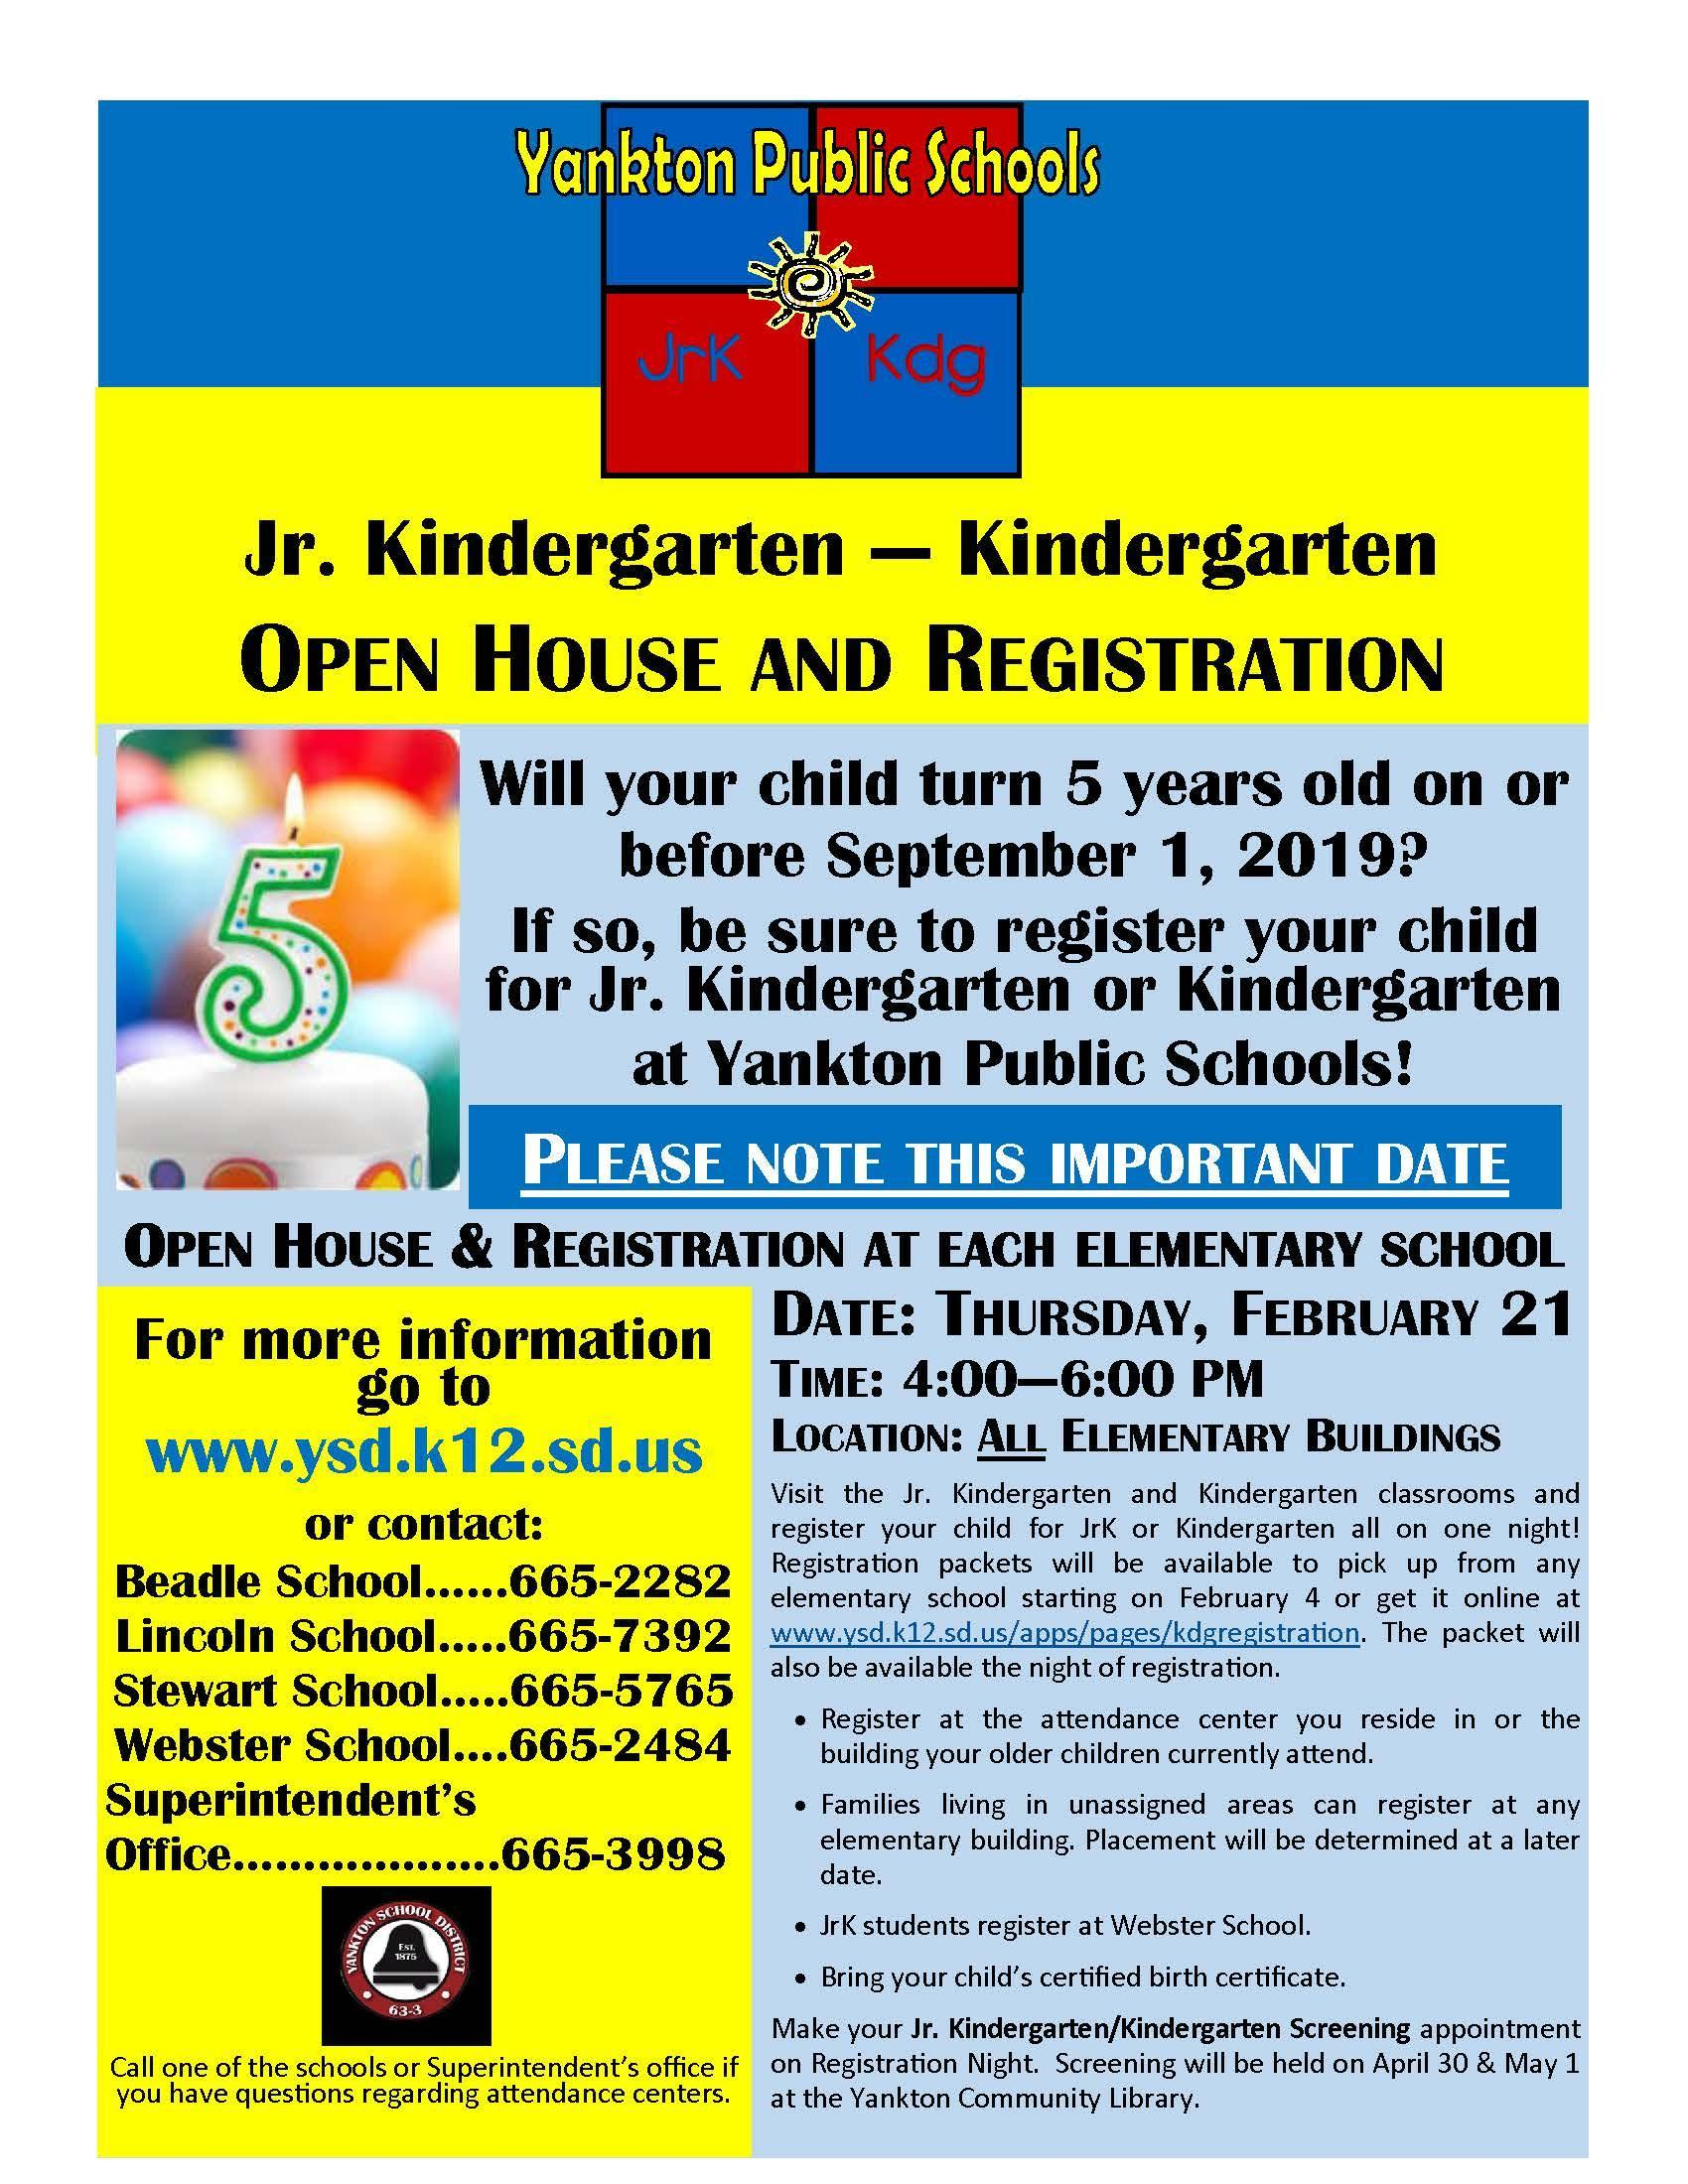 JrK/Kindergarten Registration Information - New Category - Yankton